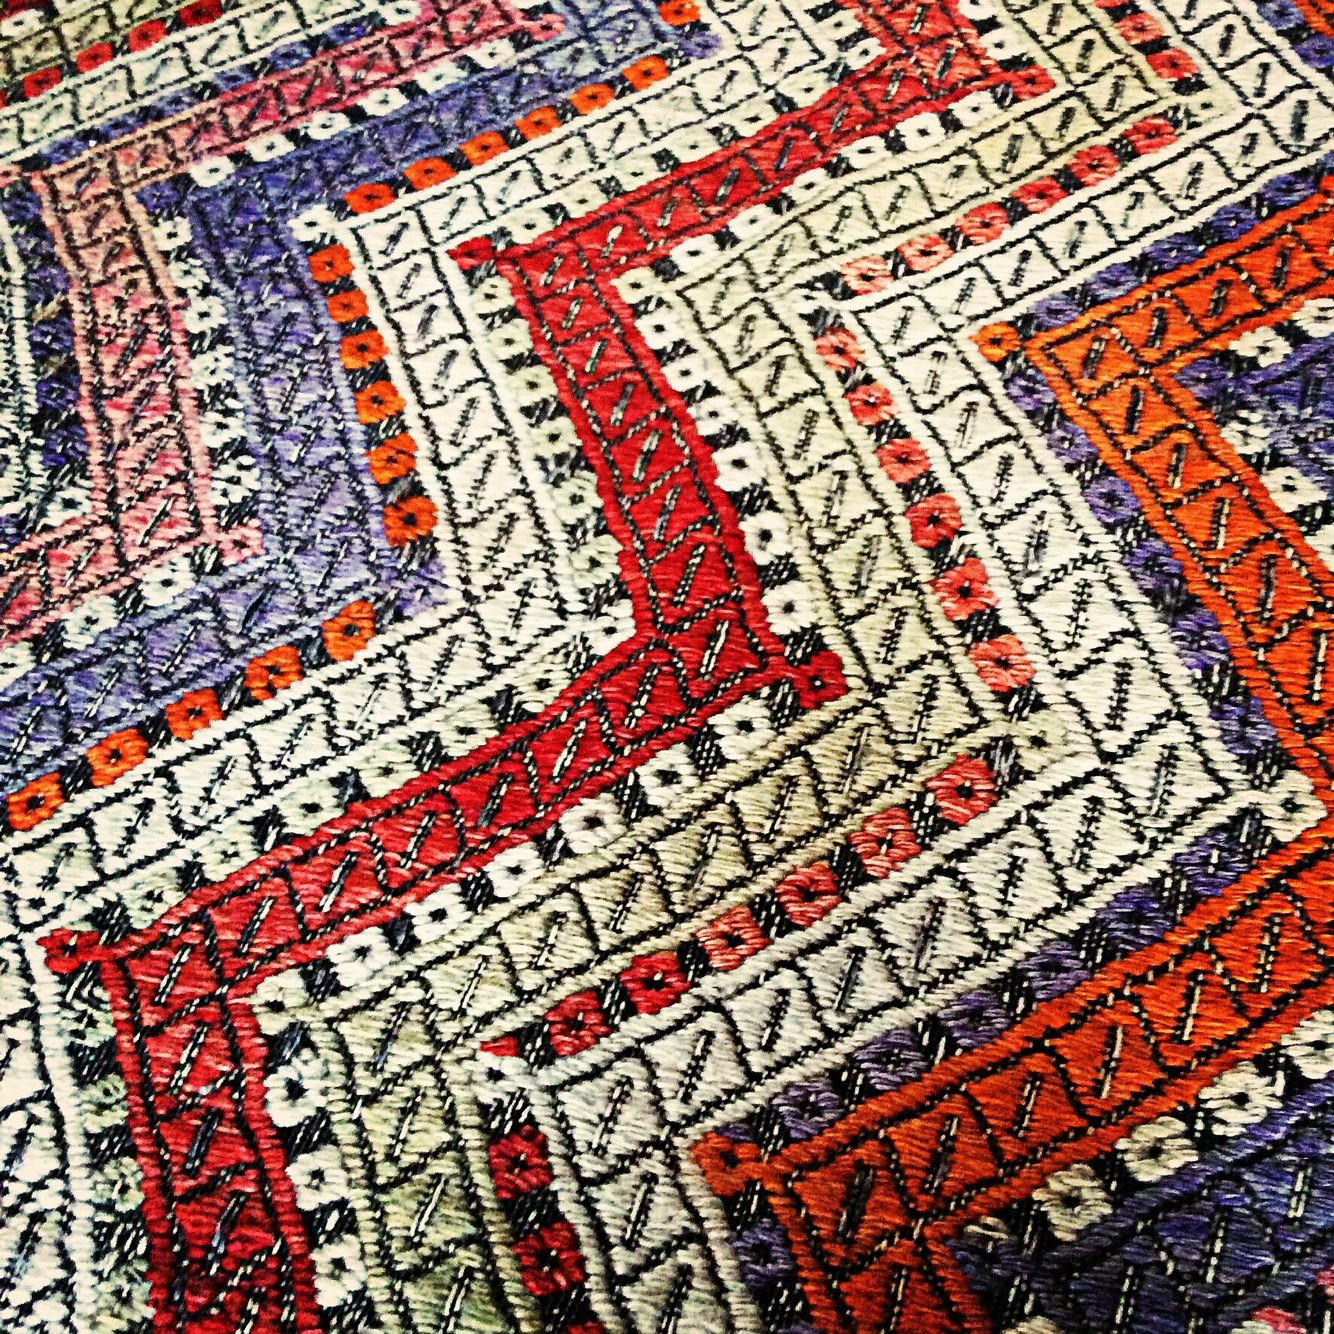 Bazar Shop Decoration Carpet Kilim Textiles Paris Pinterest